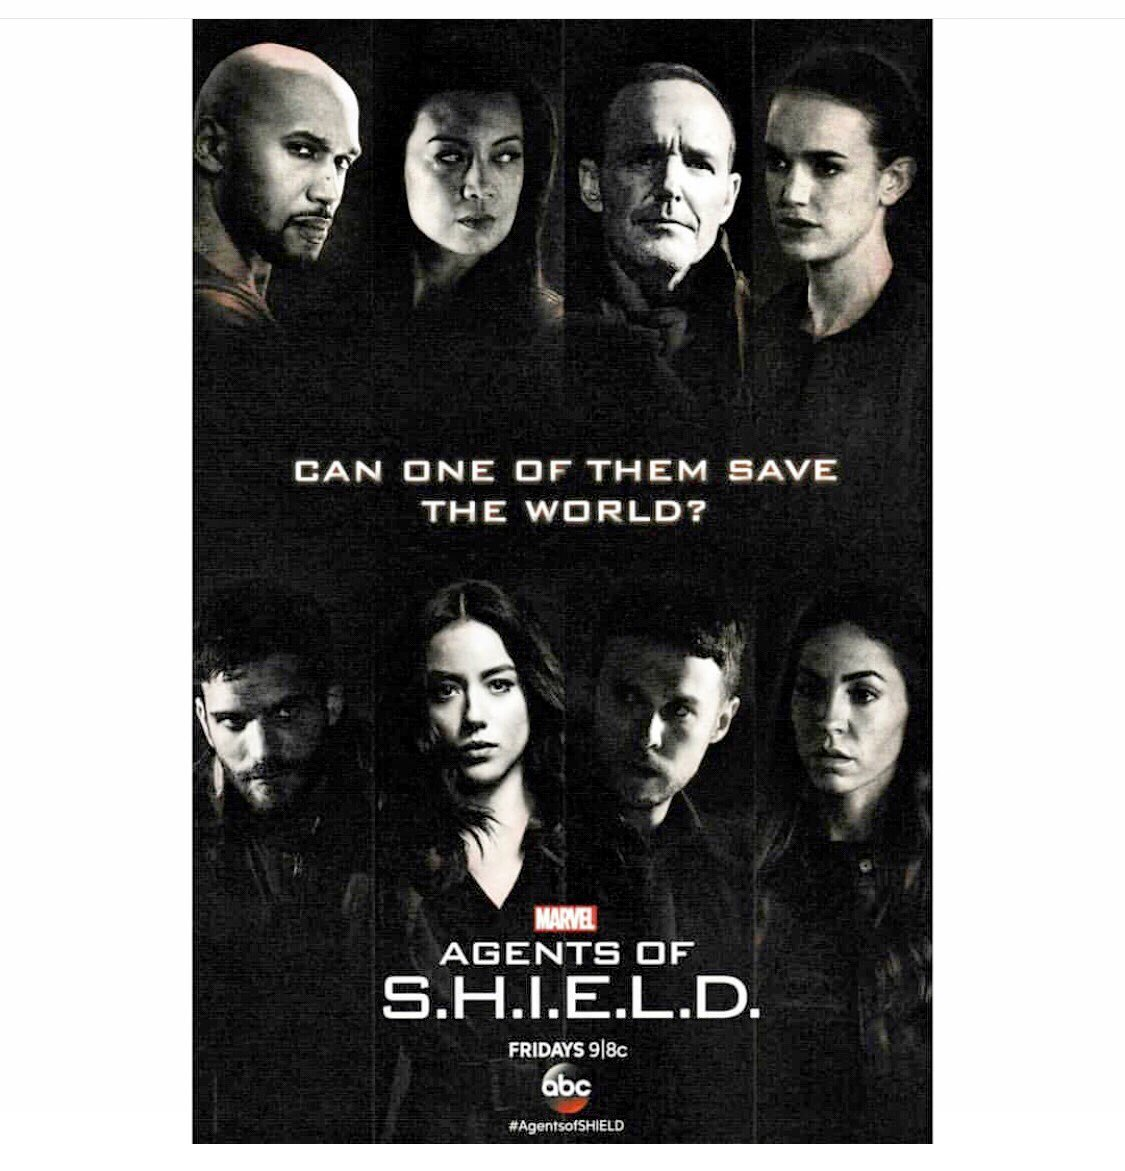 I dunno, can they? #grammar also #agentsofshield finale tonight